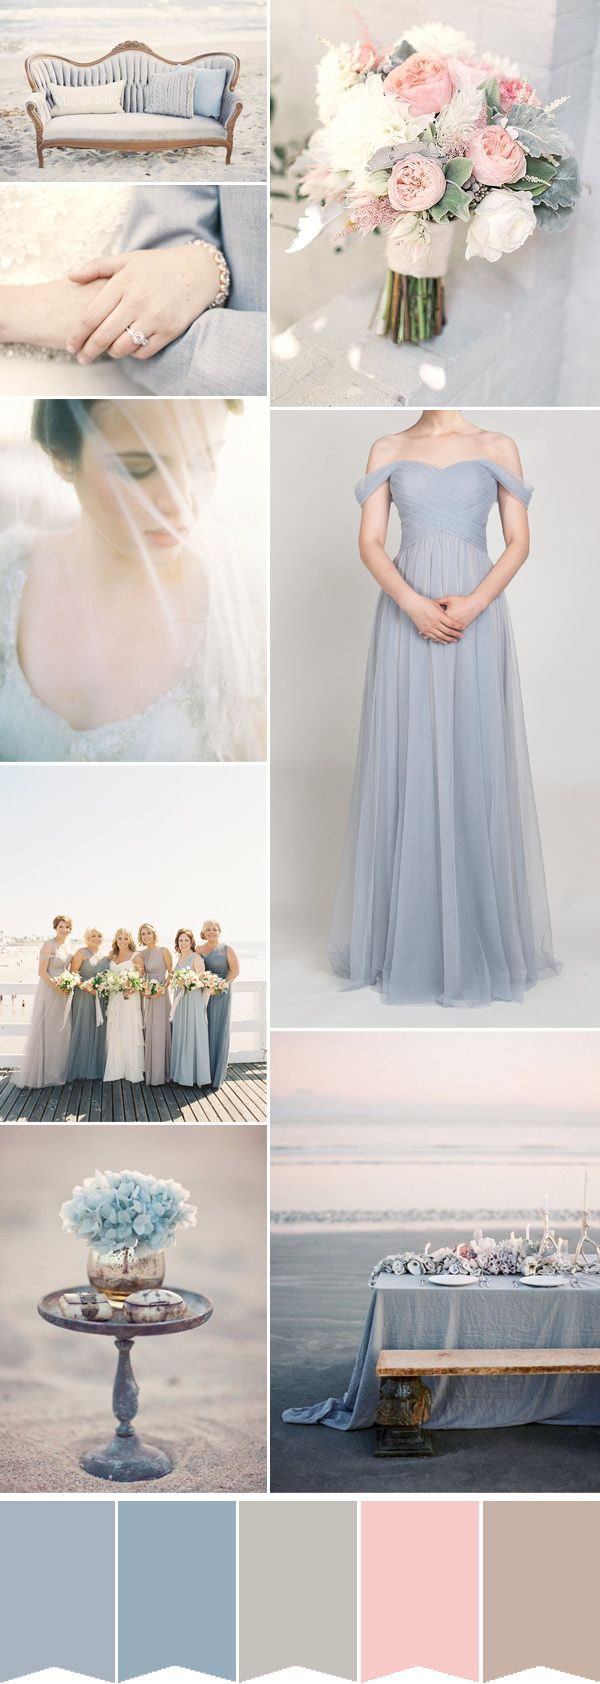 Best 25 beach wedding bridesmaid dresses ideas on pinterest best 25 beach wedding bridesmaid dresses ideas on pinterest beach bridesmaid dresses beach wedding bridesmaids and bridesmaid dresses ombrellifo Gallery